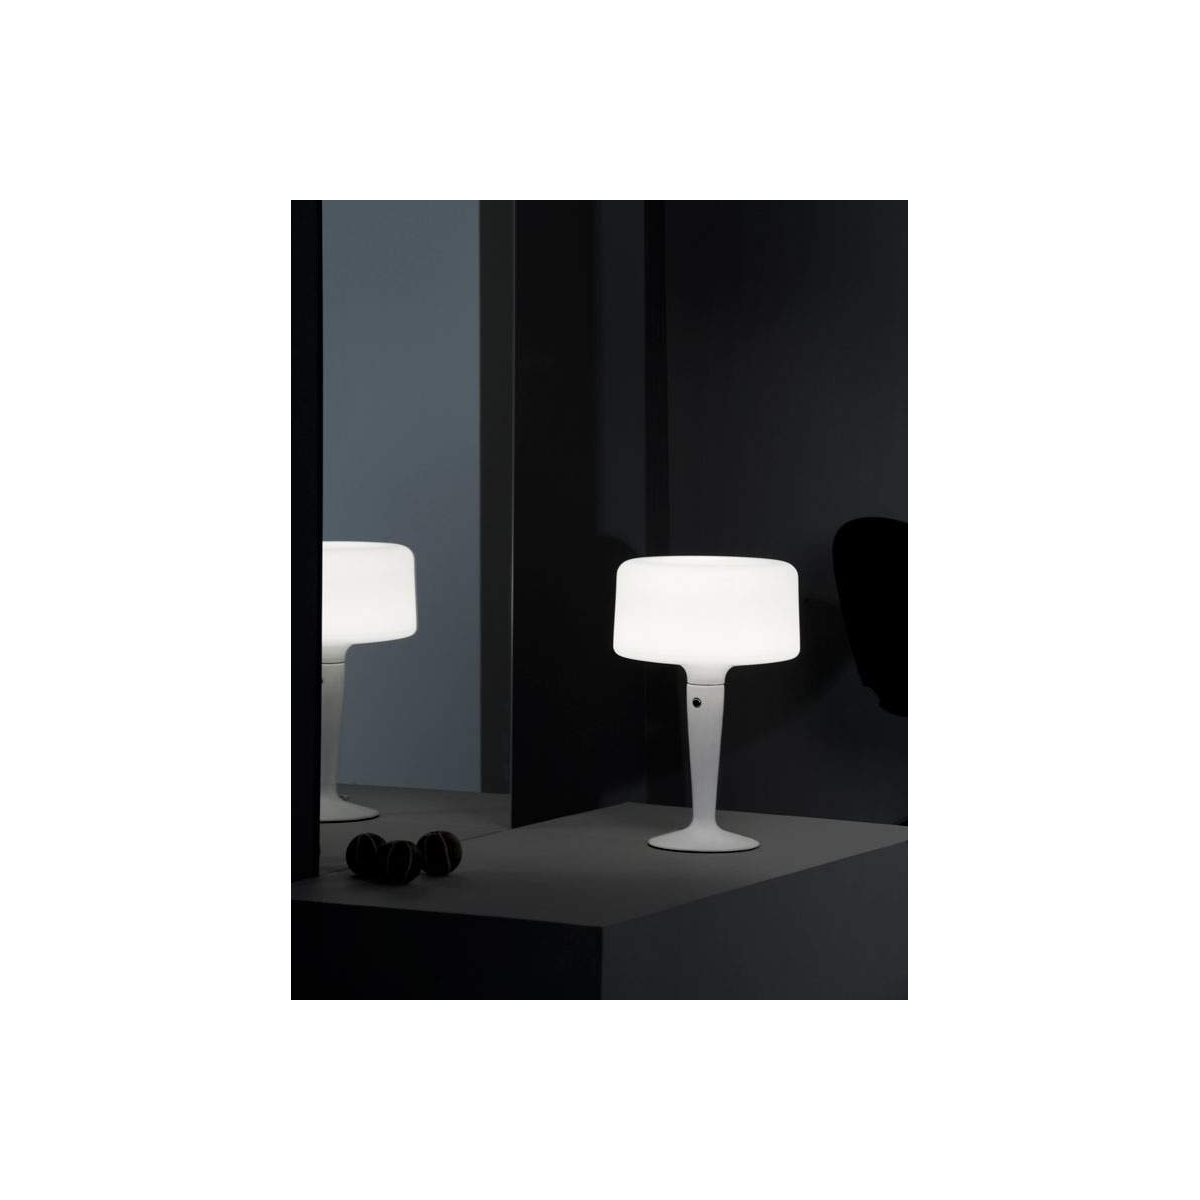 lampe a poser design meilleures images d 39 inspiration. Black Bedroom Furniture Sets. Home Design Ideas